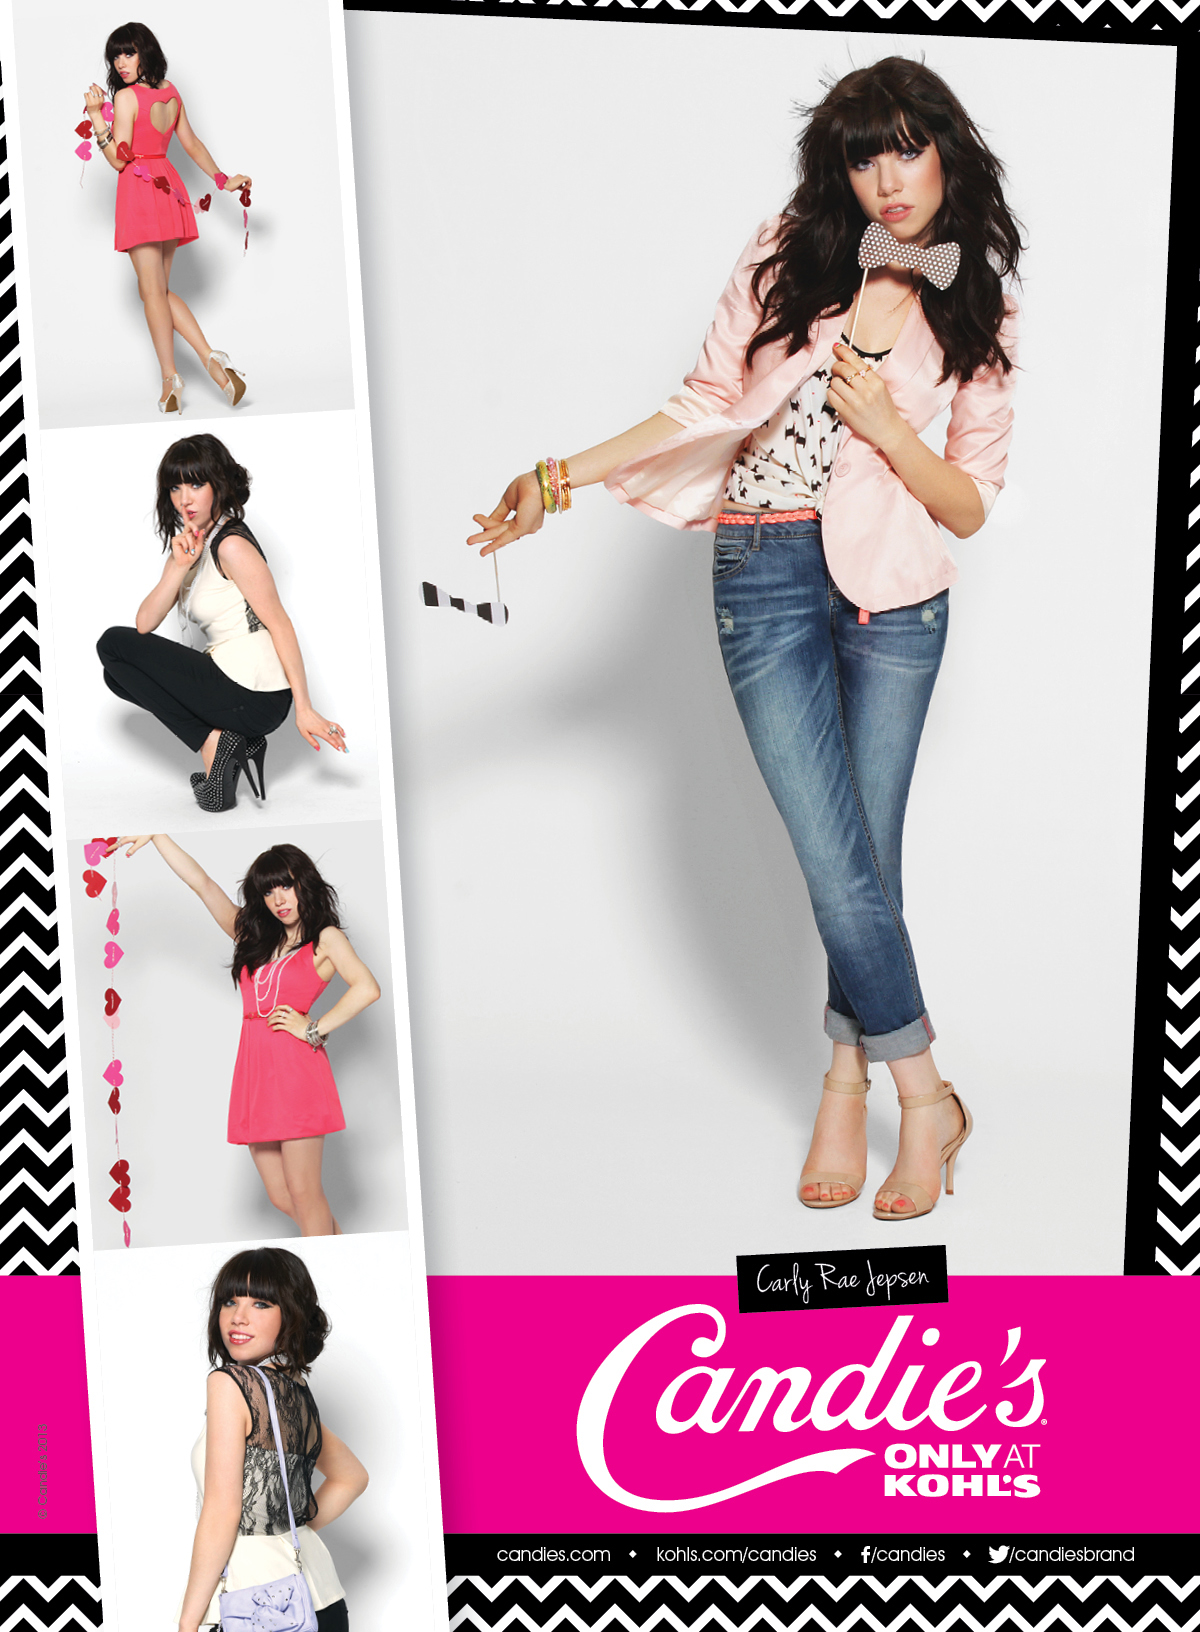 f48d292b6 Carly Rae Jepsen for Candie's Ad ImageCarly Rae Jepsen, Candies, Candie's,  Kohl's, photobooth, marketing campaign, Spring 2013 ...